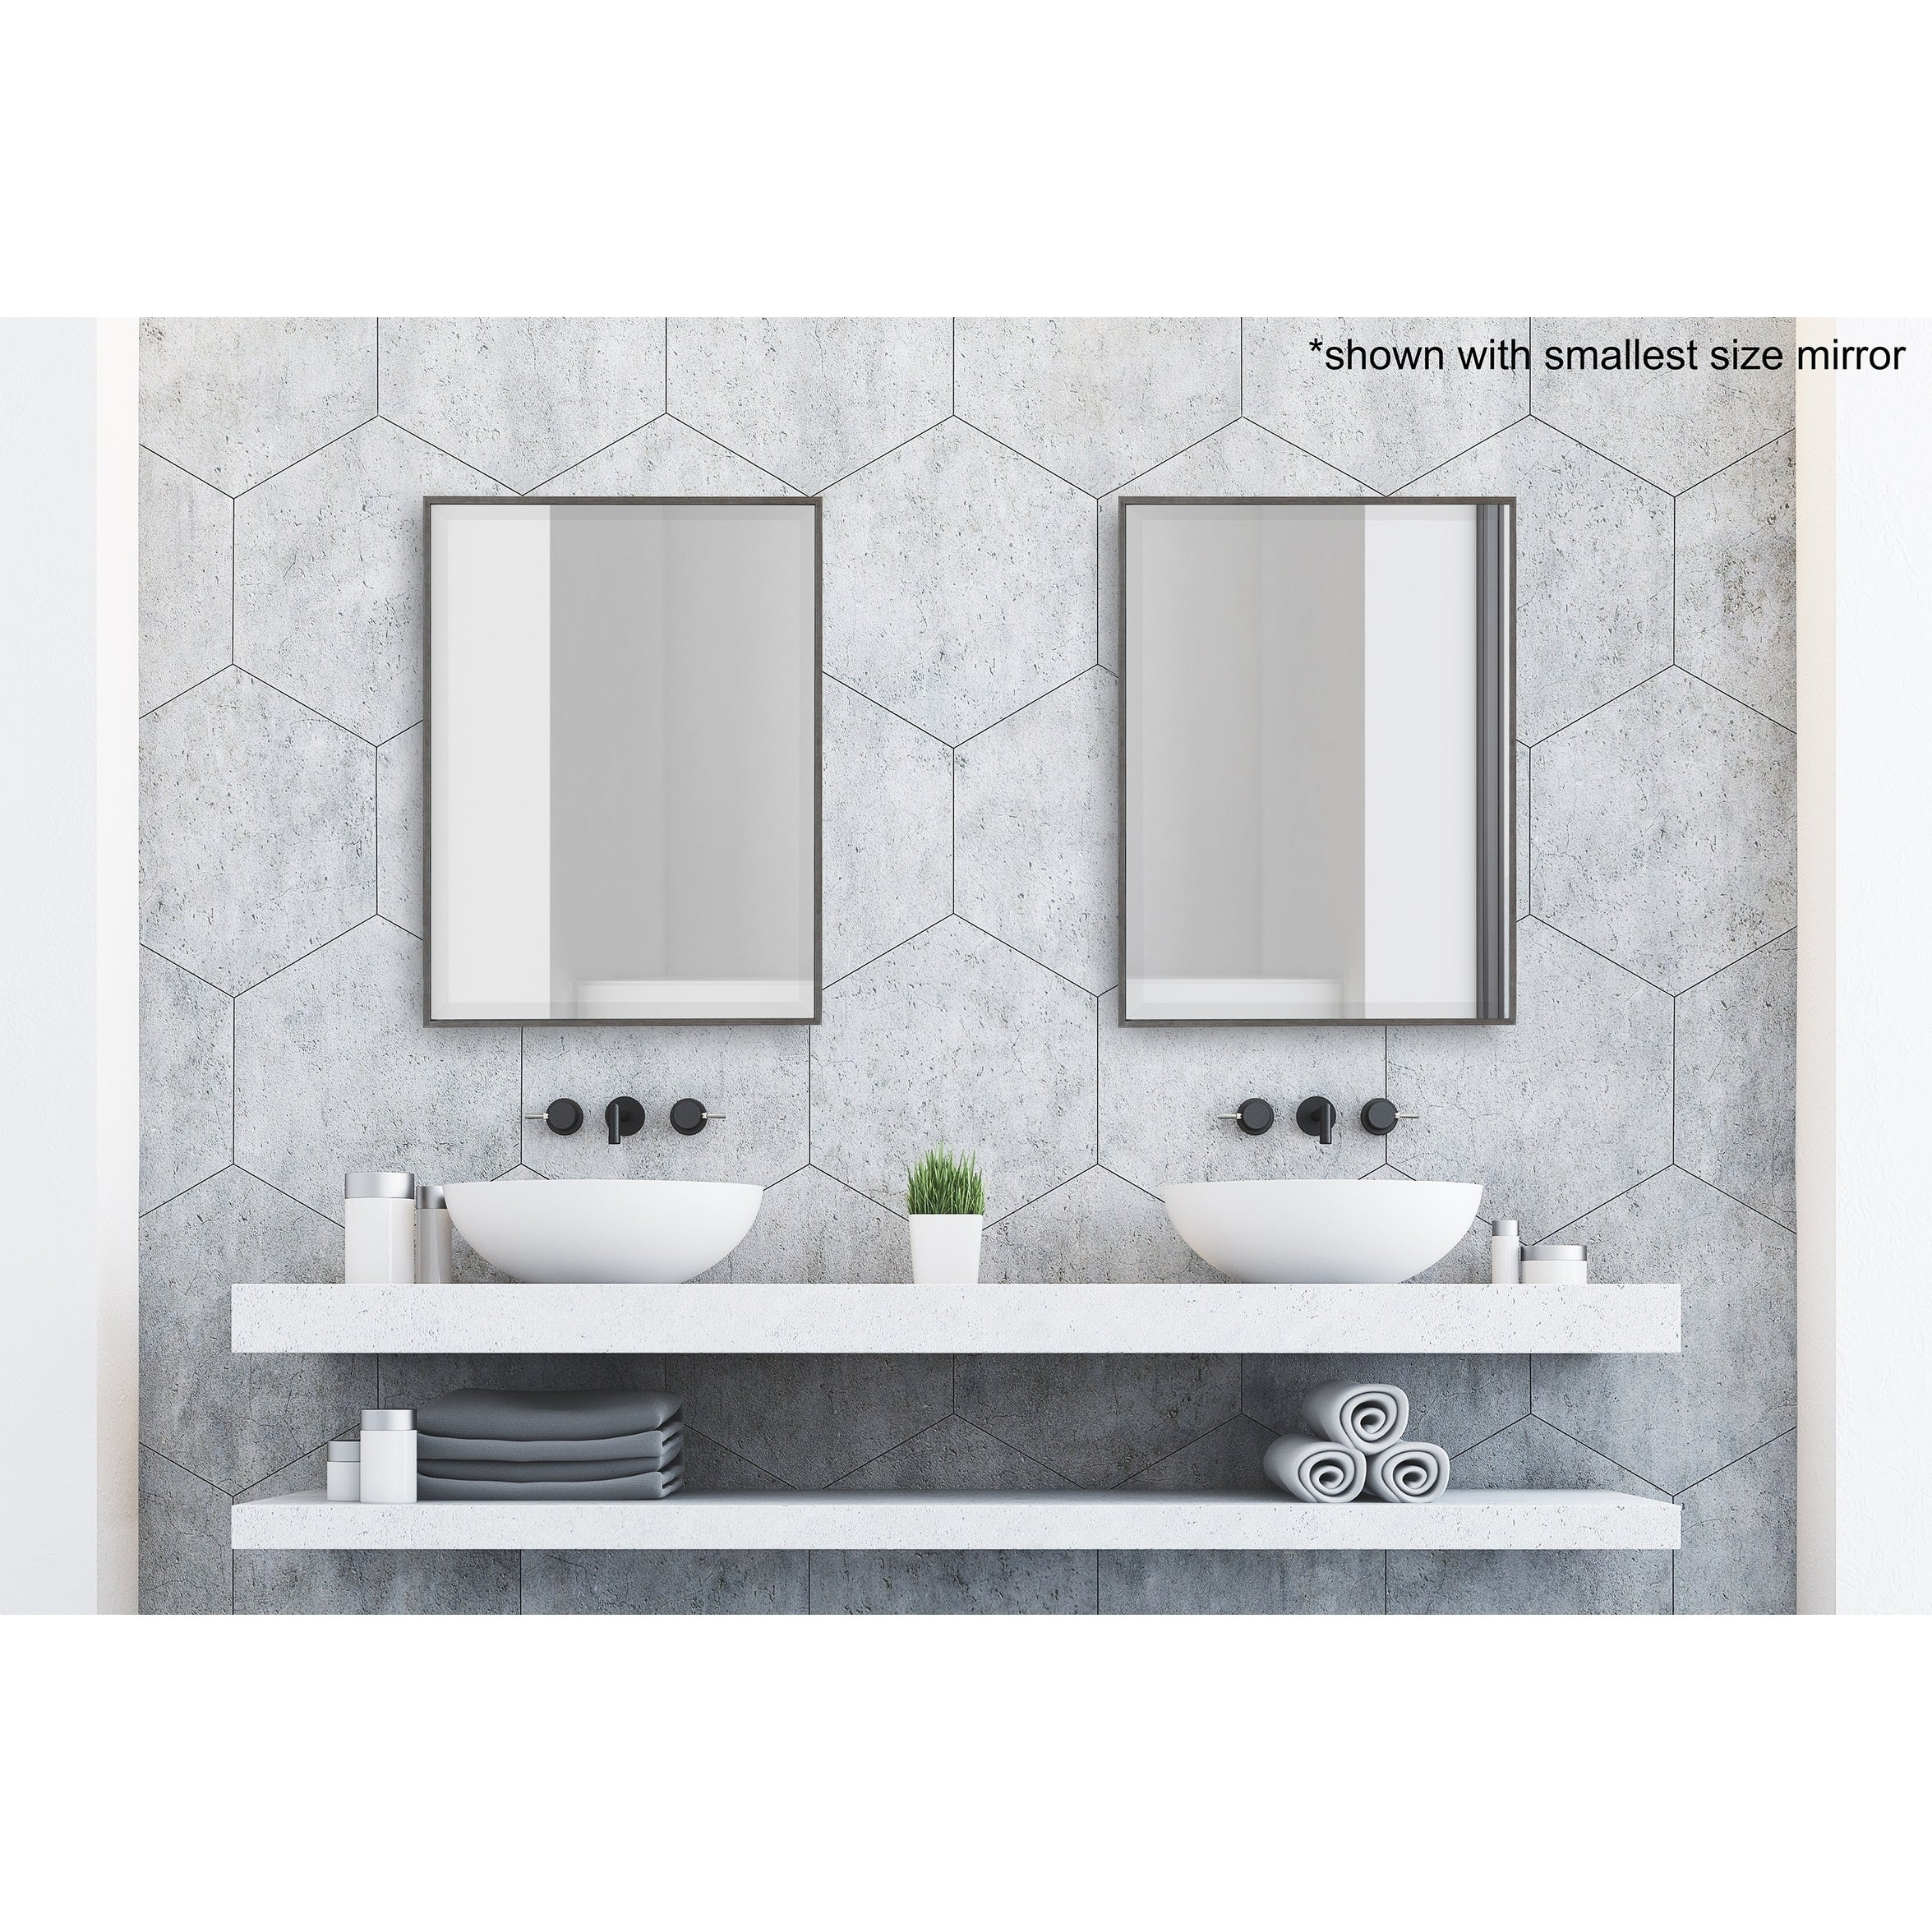 Mirrors | Shop Online At Overstock For Wallingford Large Frameless Wall Mirrors (View 14 of 20)